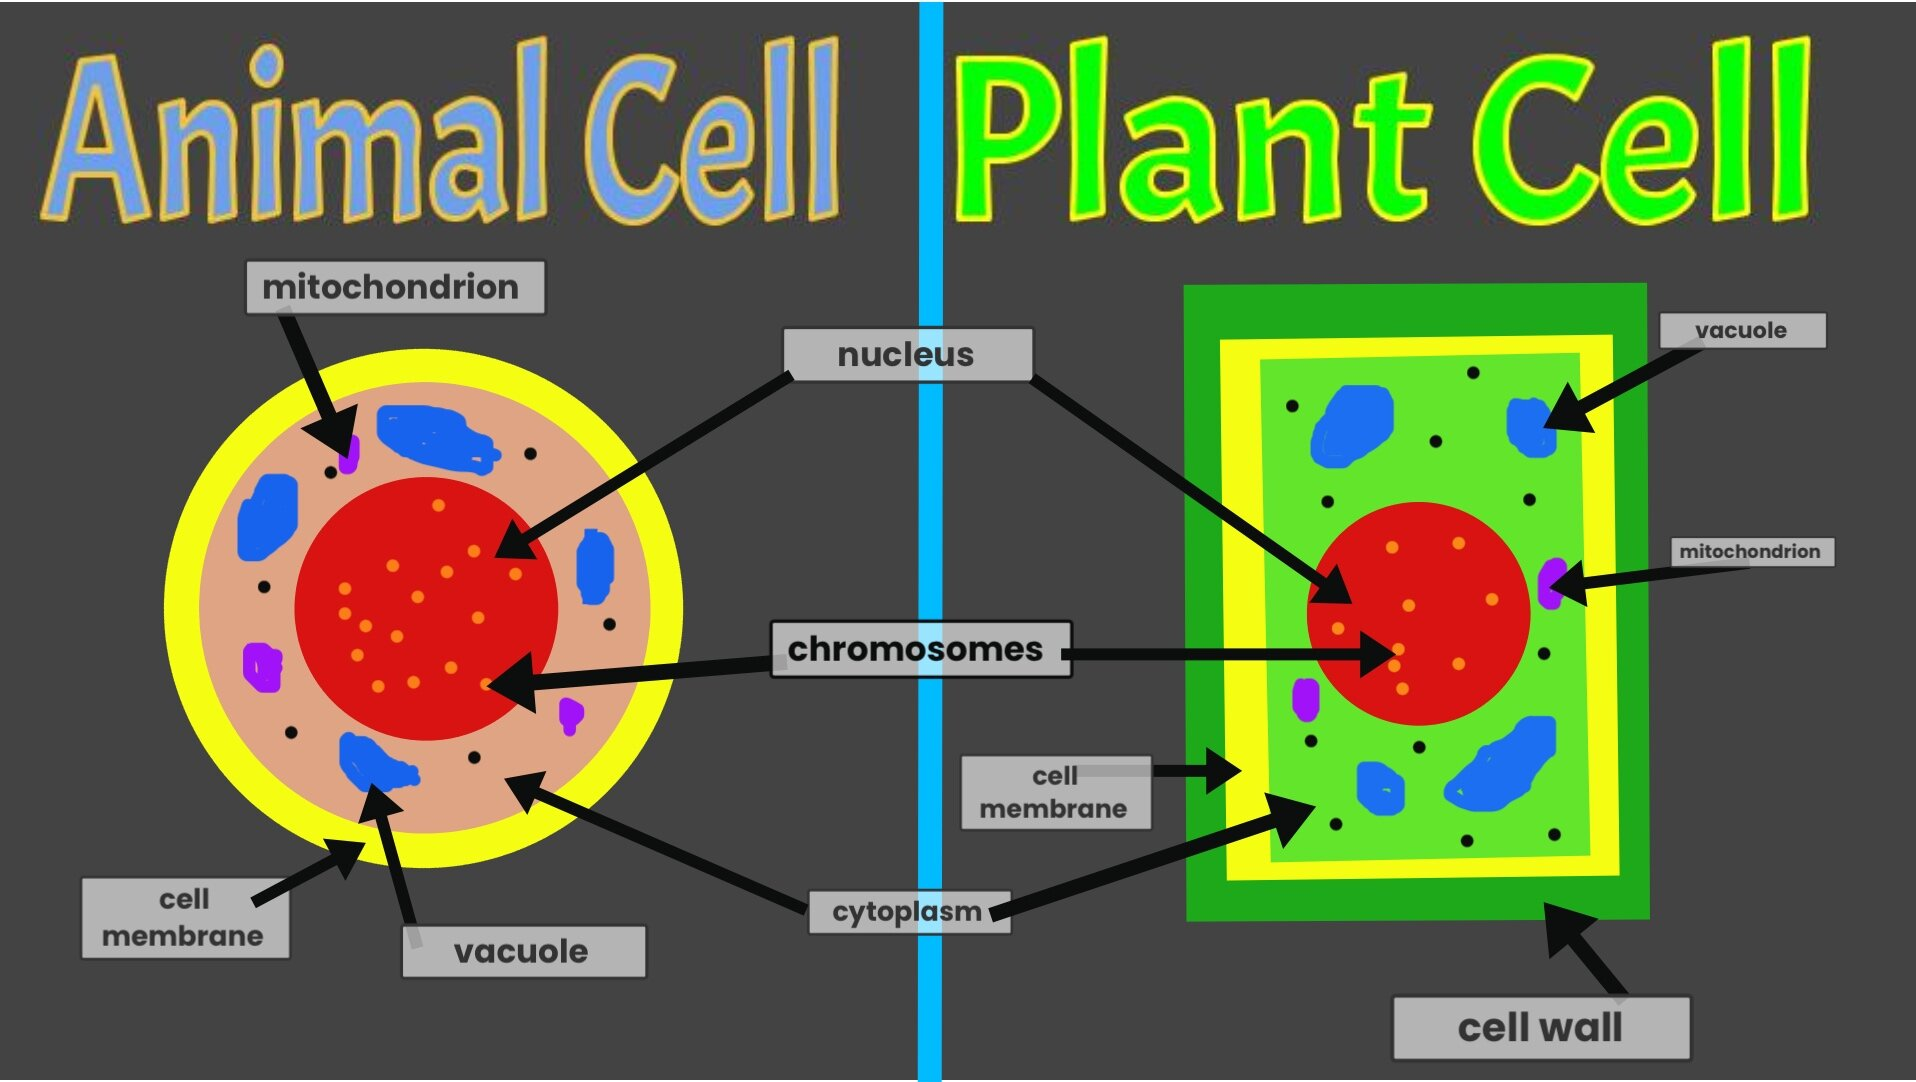 5th animal plant cell.jpg